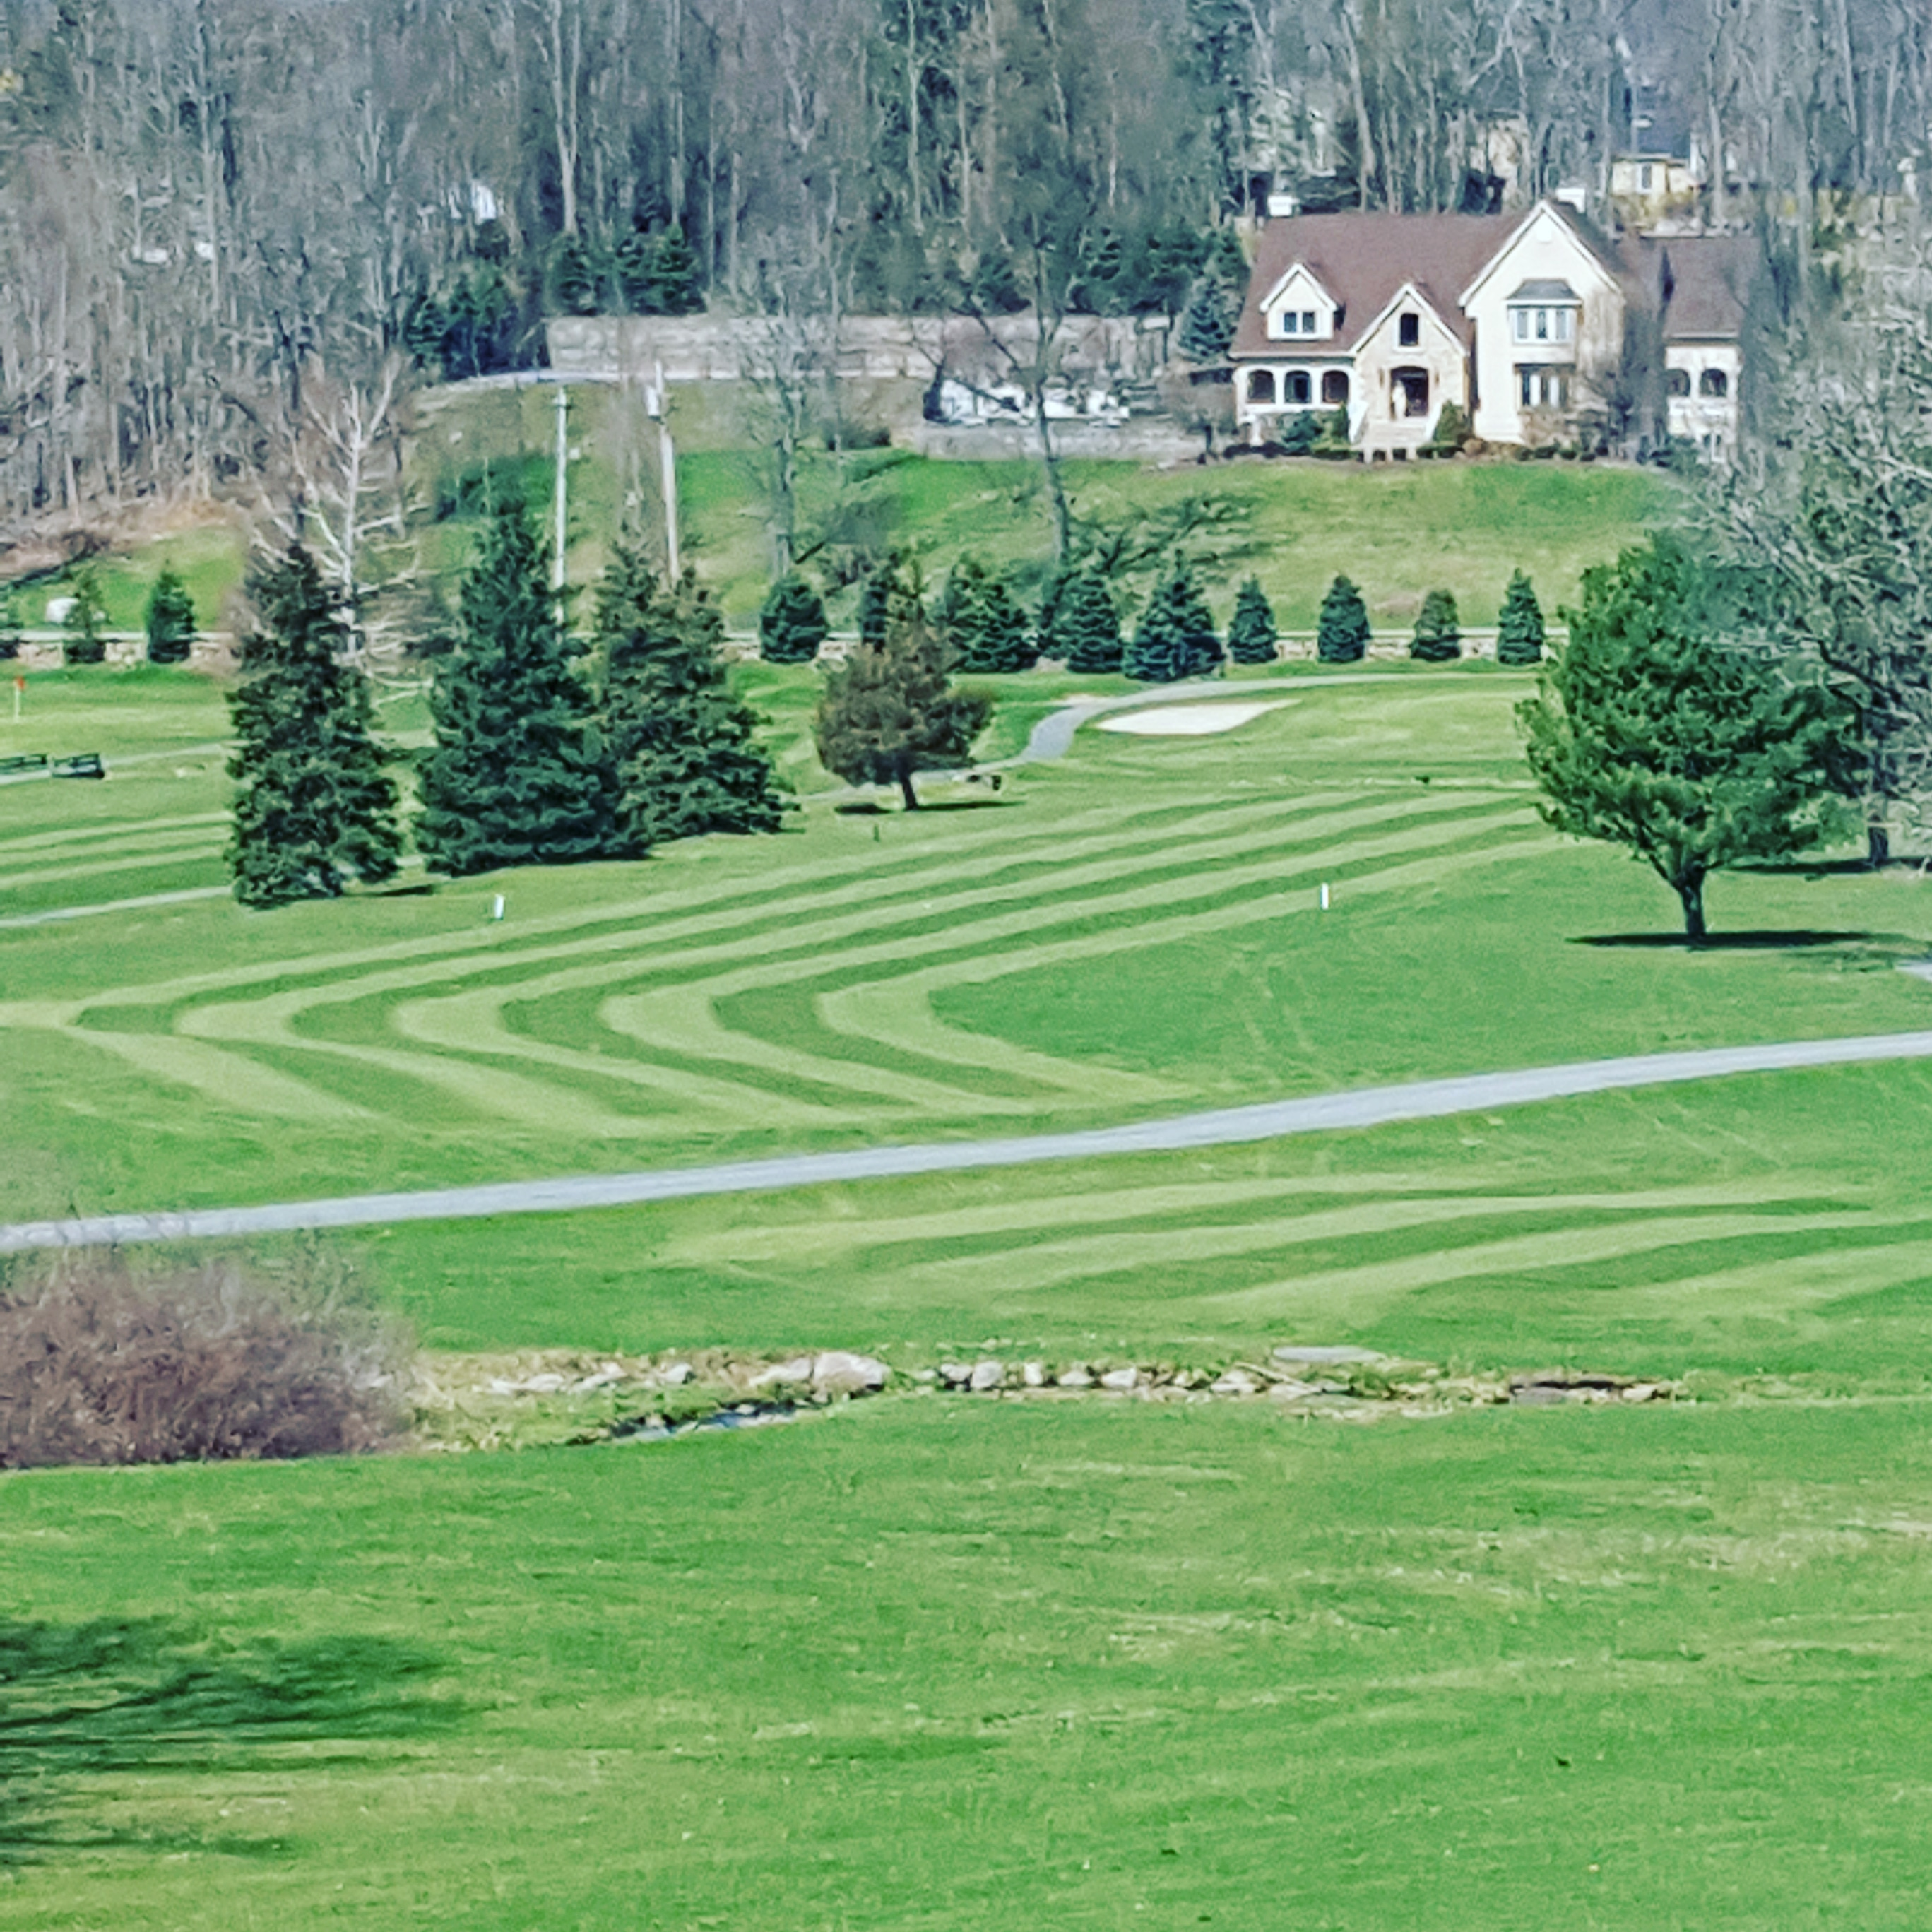 16+ Central valley golf club ny ideas in 2021